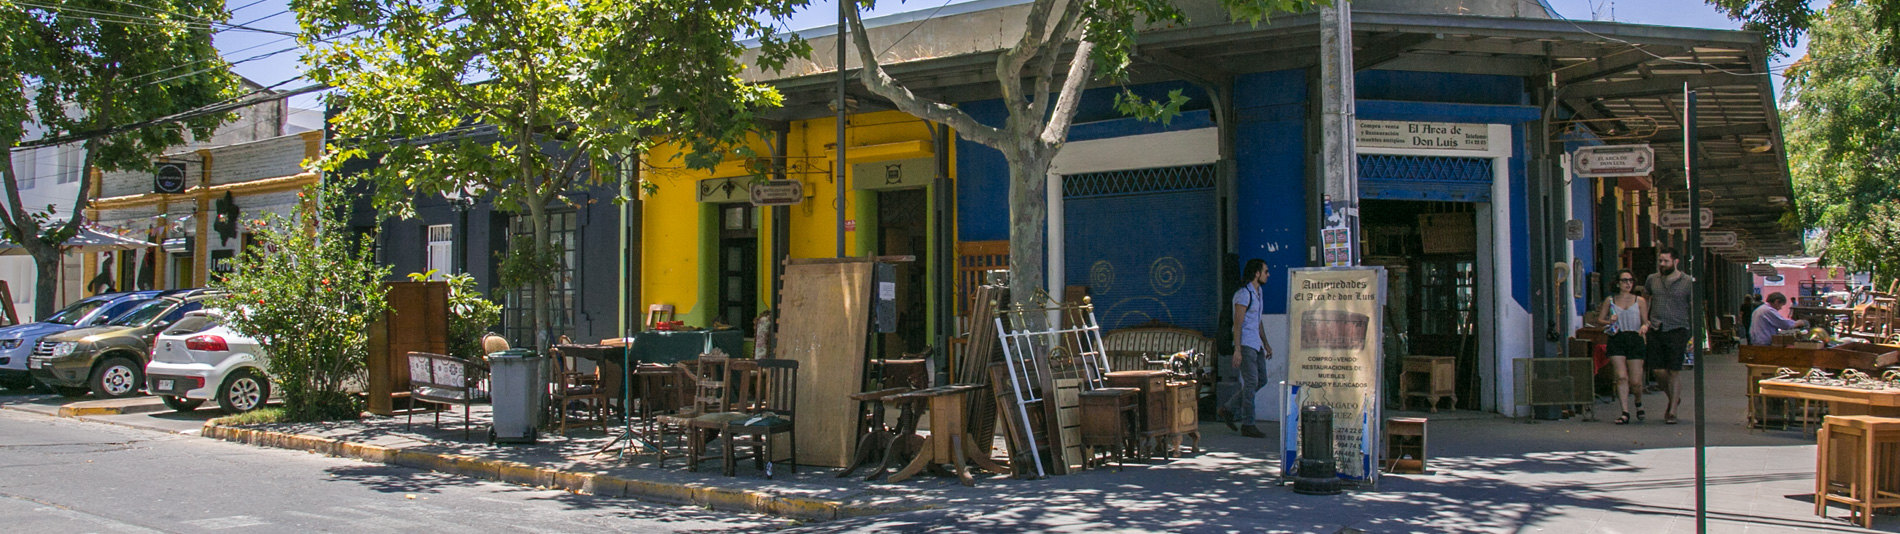 Neighbourhood italia - Furniture Restoration and Antiques - Santiago